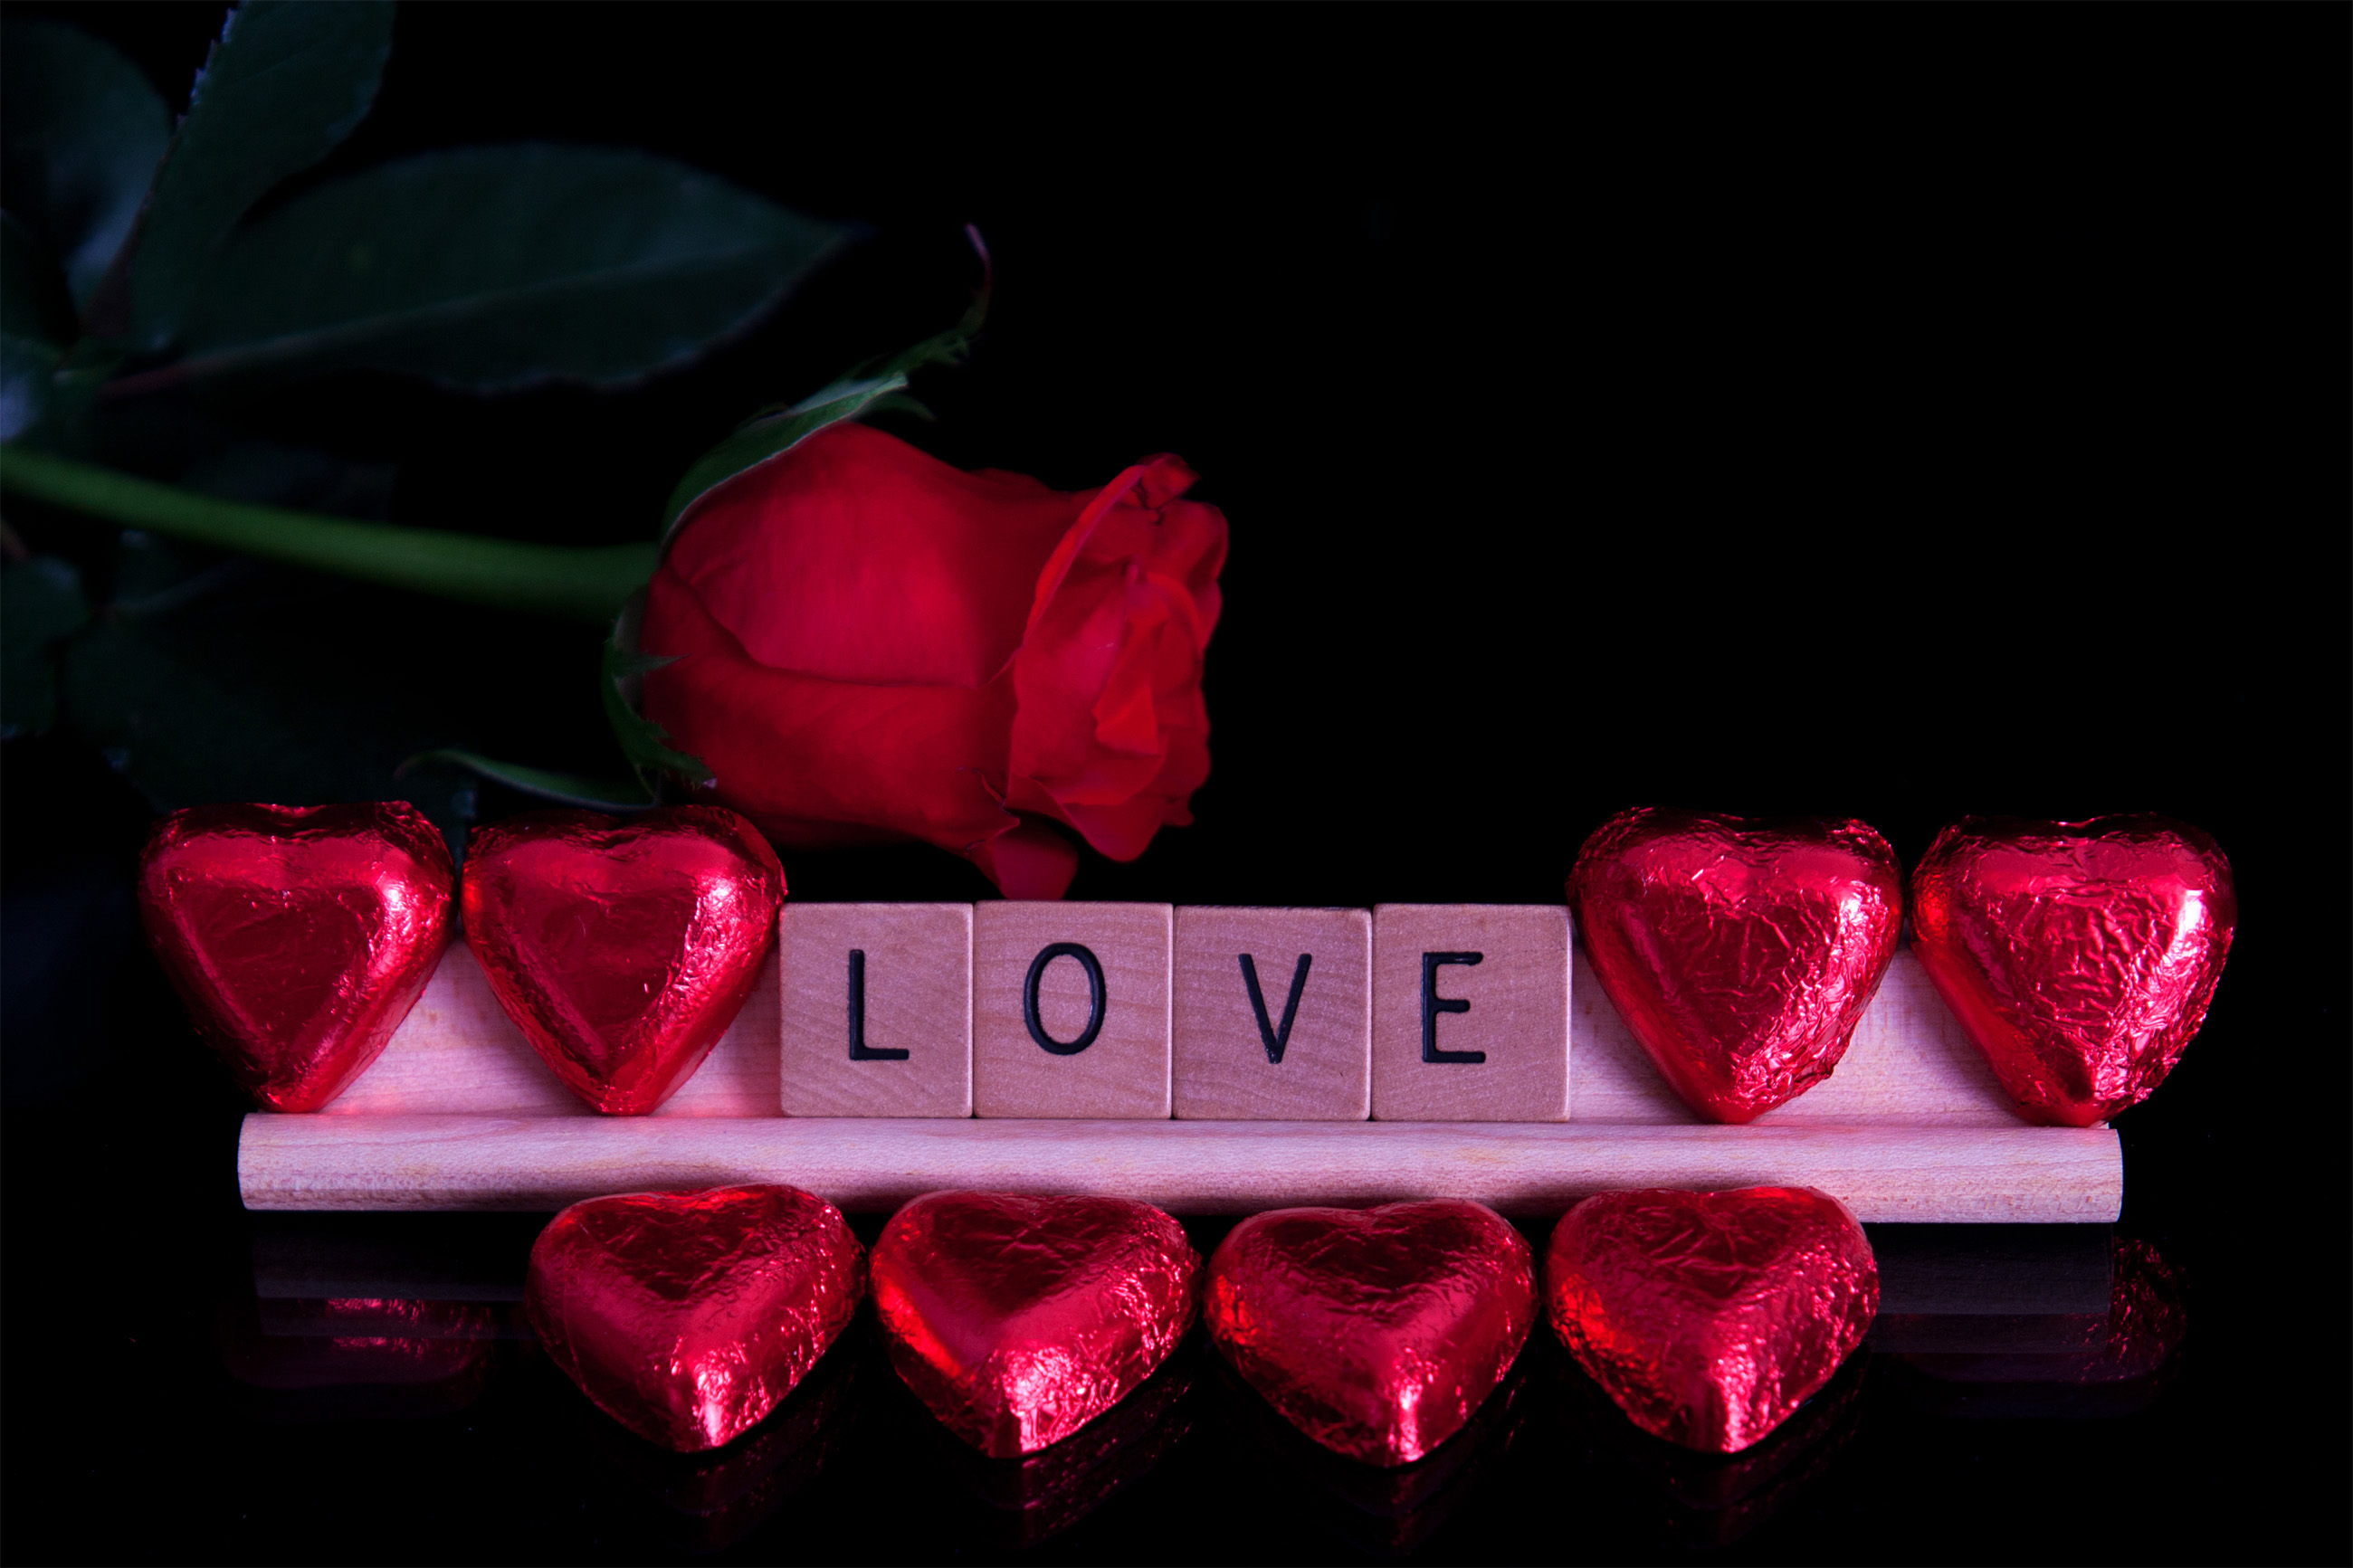 Love and Romance, Arrangement, Romance, Isolated, Love, HQ Photo